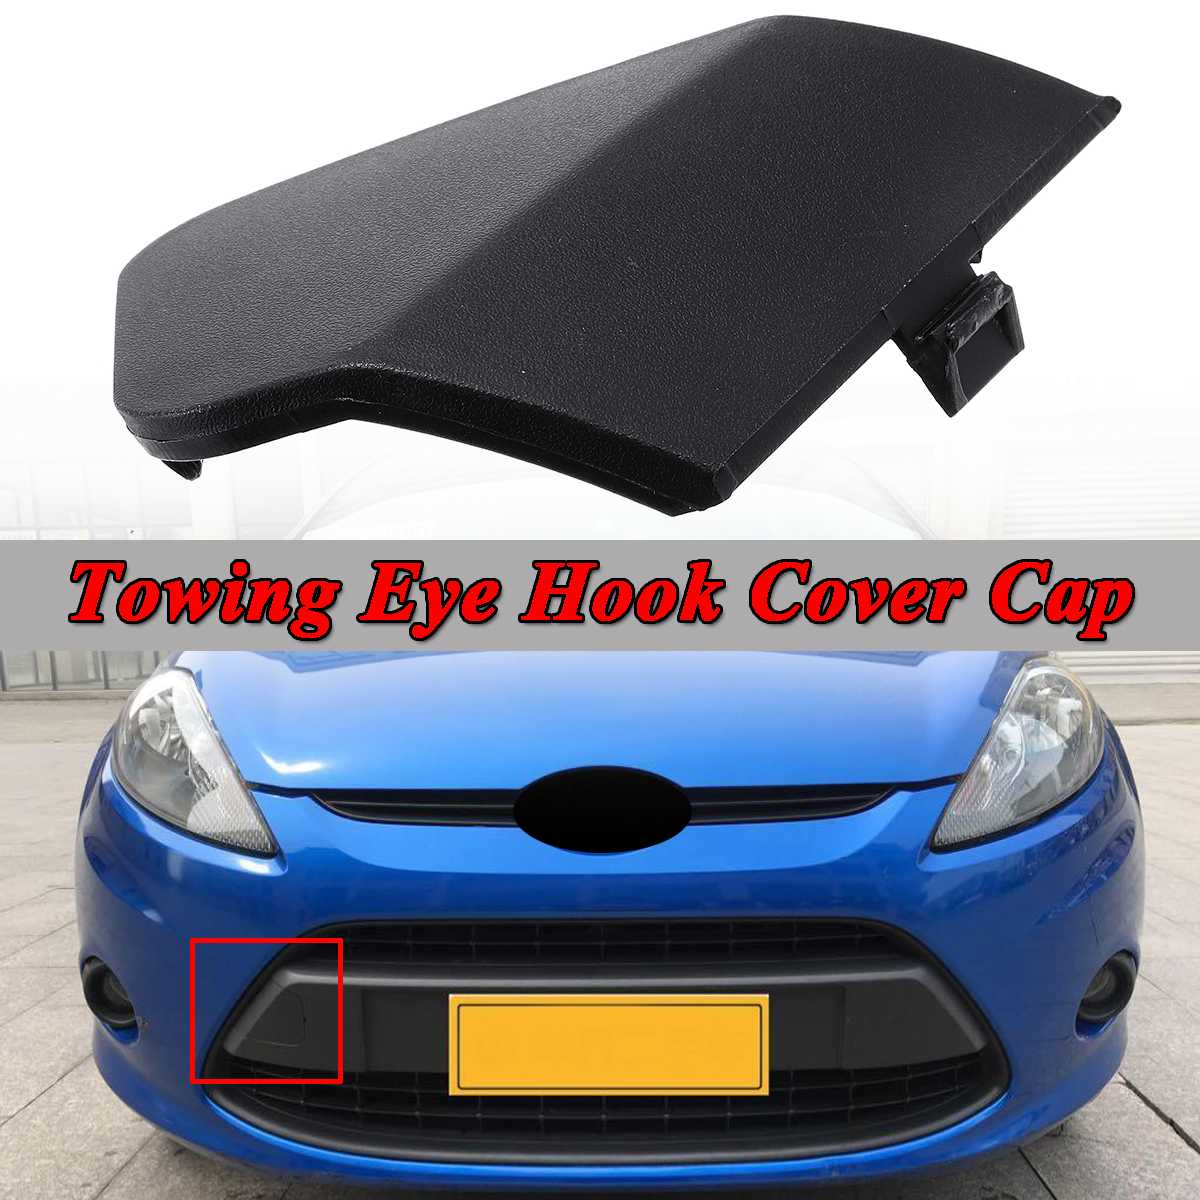 Front Bumper Towing Eye Cover Black Ford Fiesta Mk7 2008-2012 New High Quality